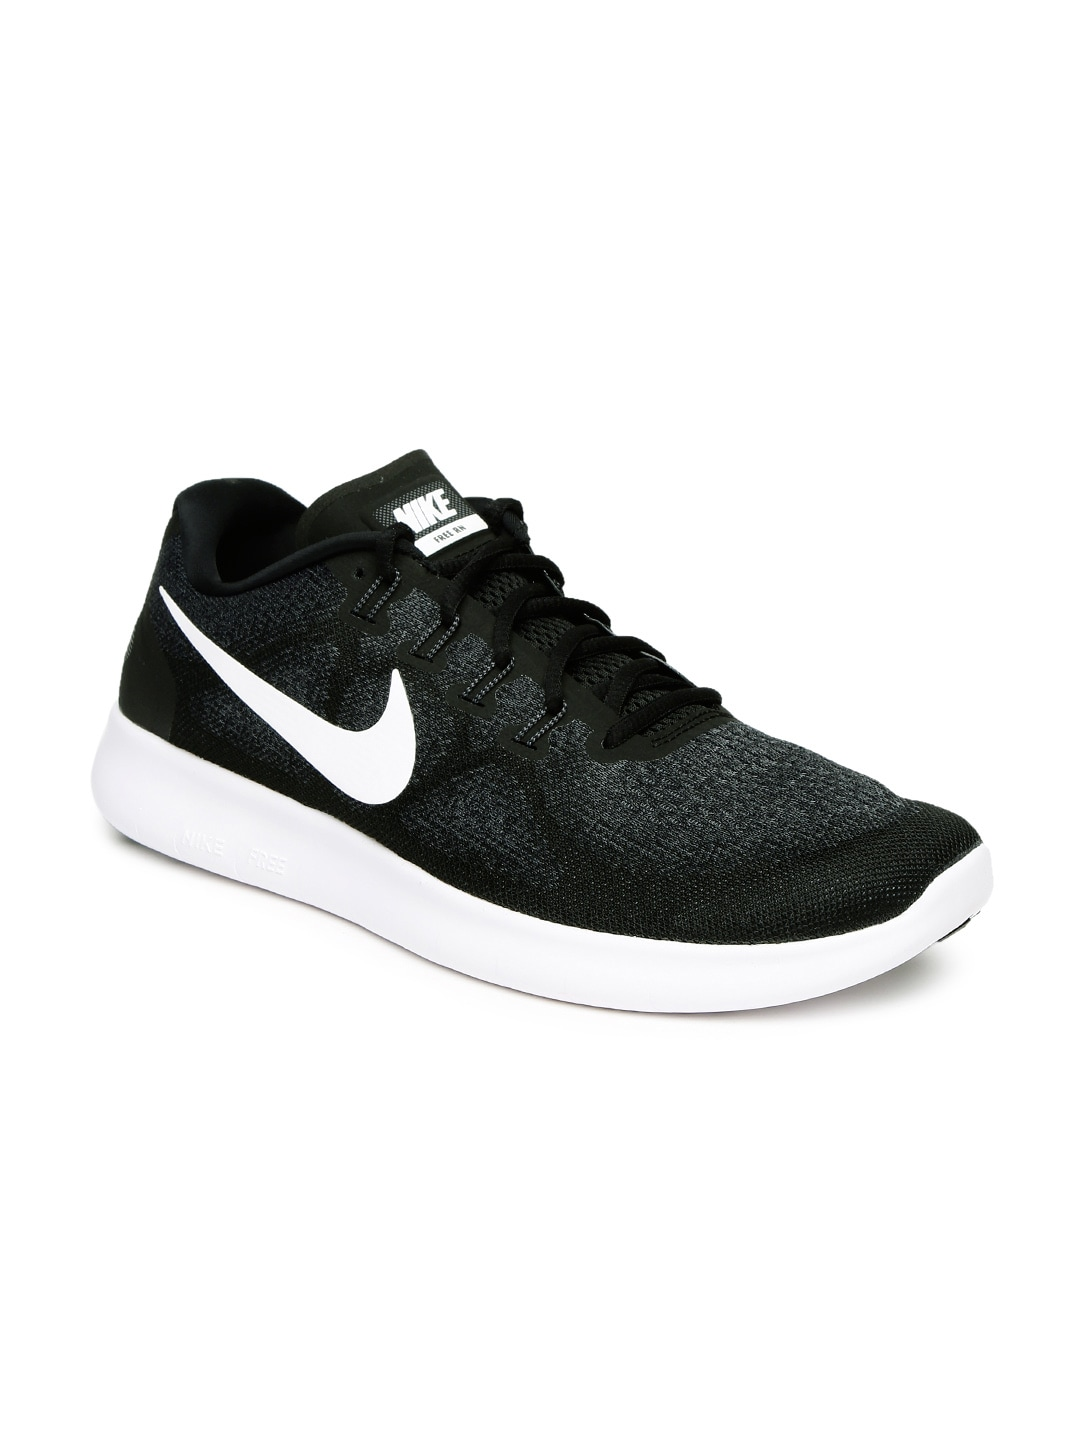 72084d3f04a03 Nike Free Rn - Buy Nike Free Rn online in India